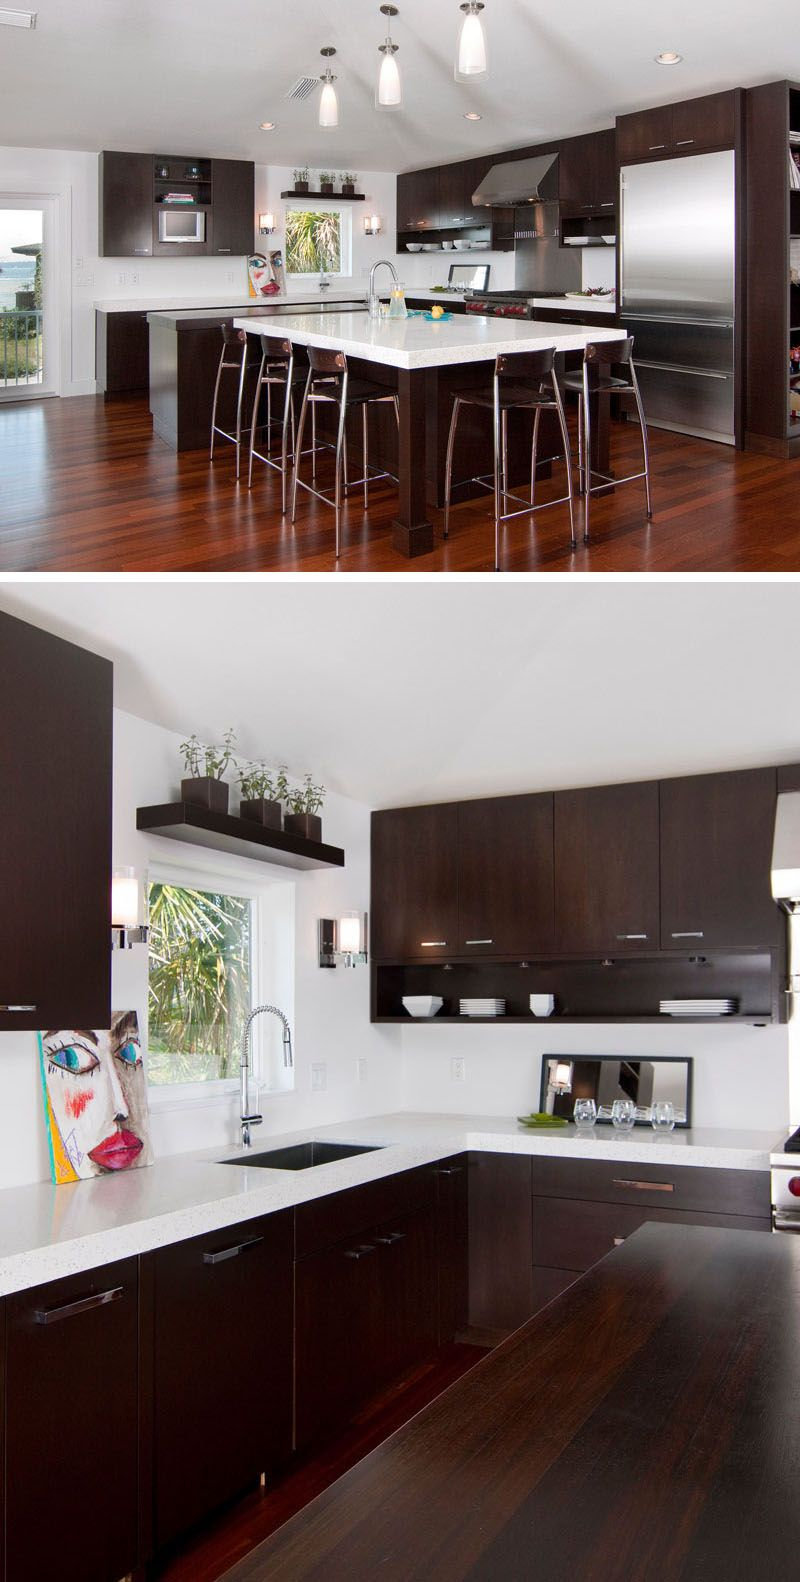 9 Inspirational Kitchens That Combine Dark Wood Cabinetry And White Countertops White Countertops White Kitchen Countertops Dark Wood Kitchens